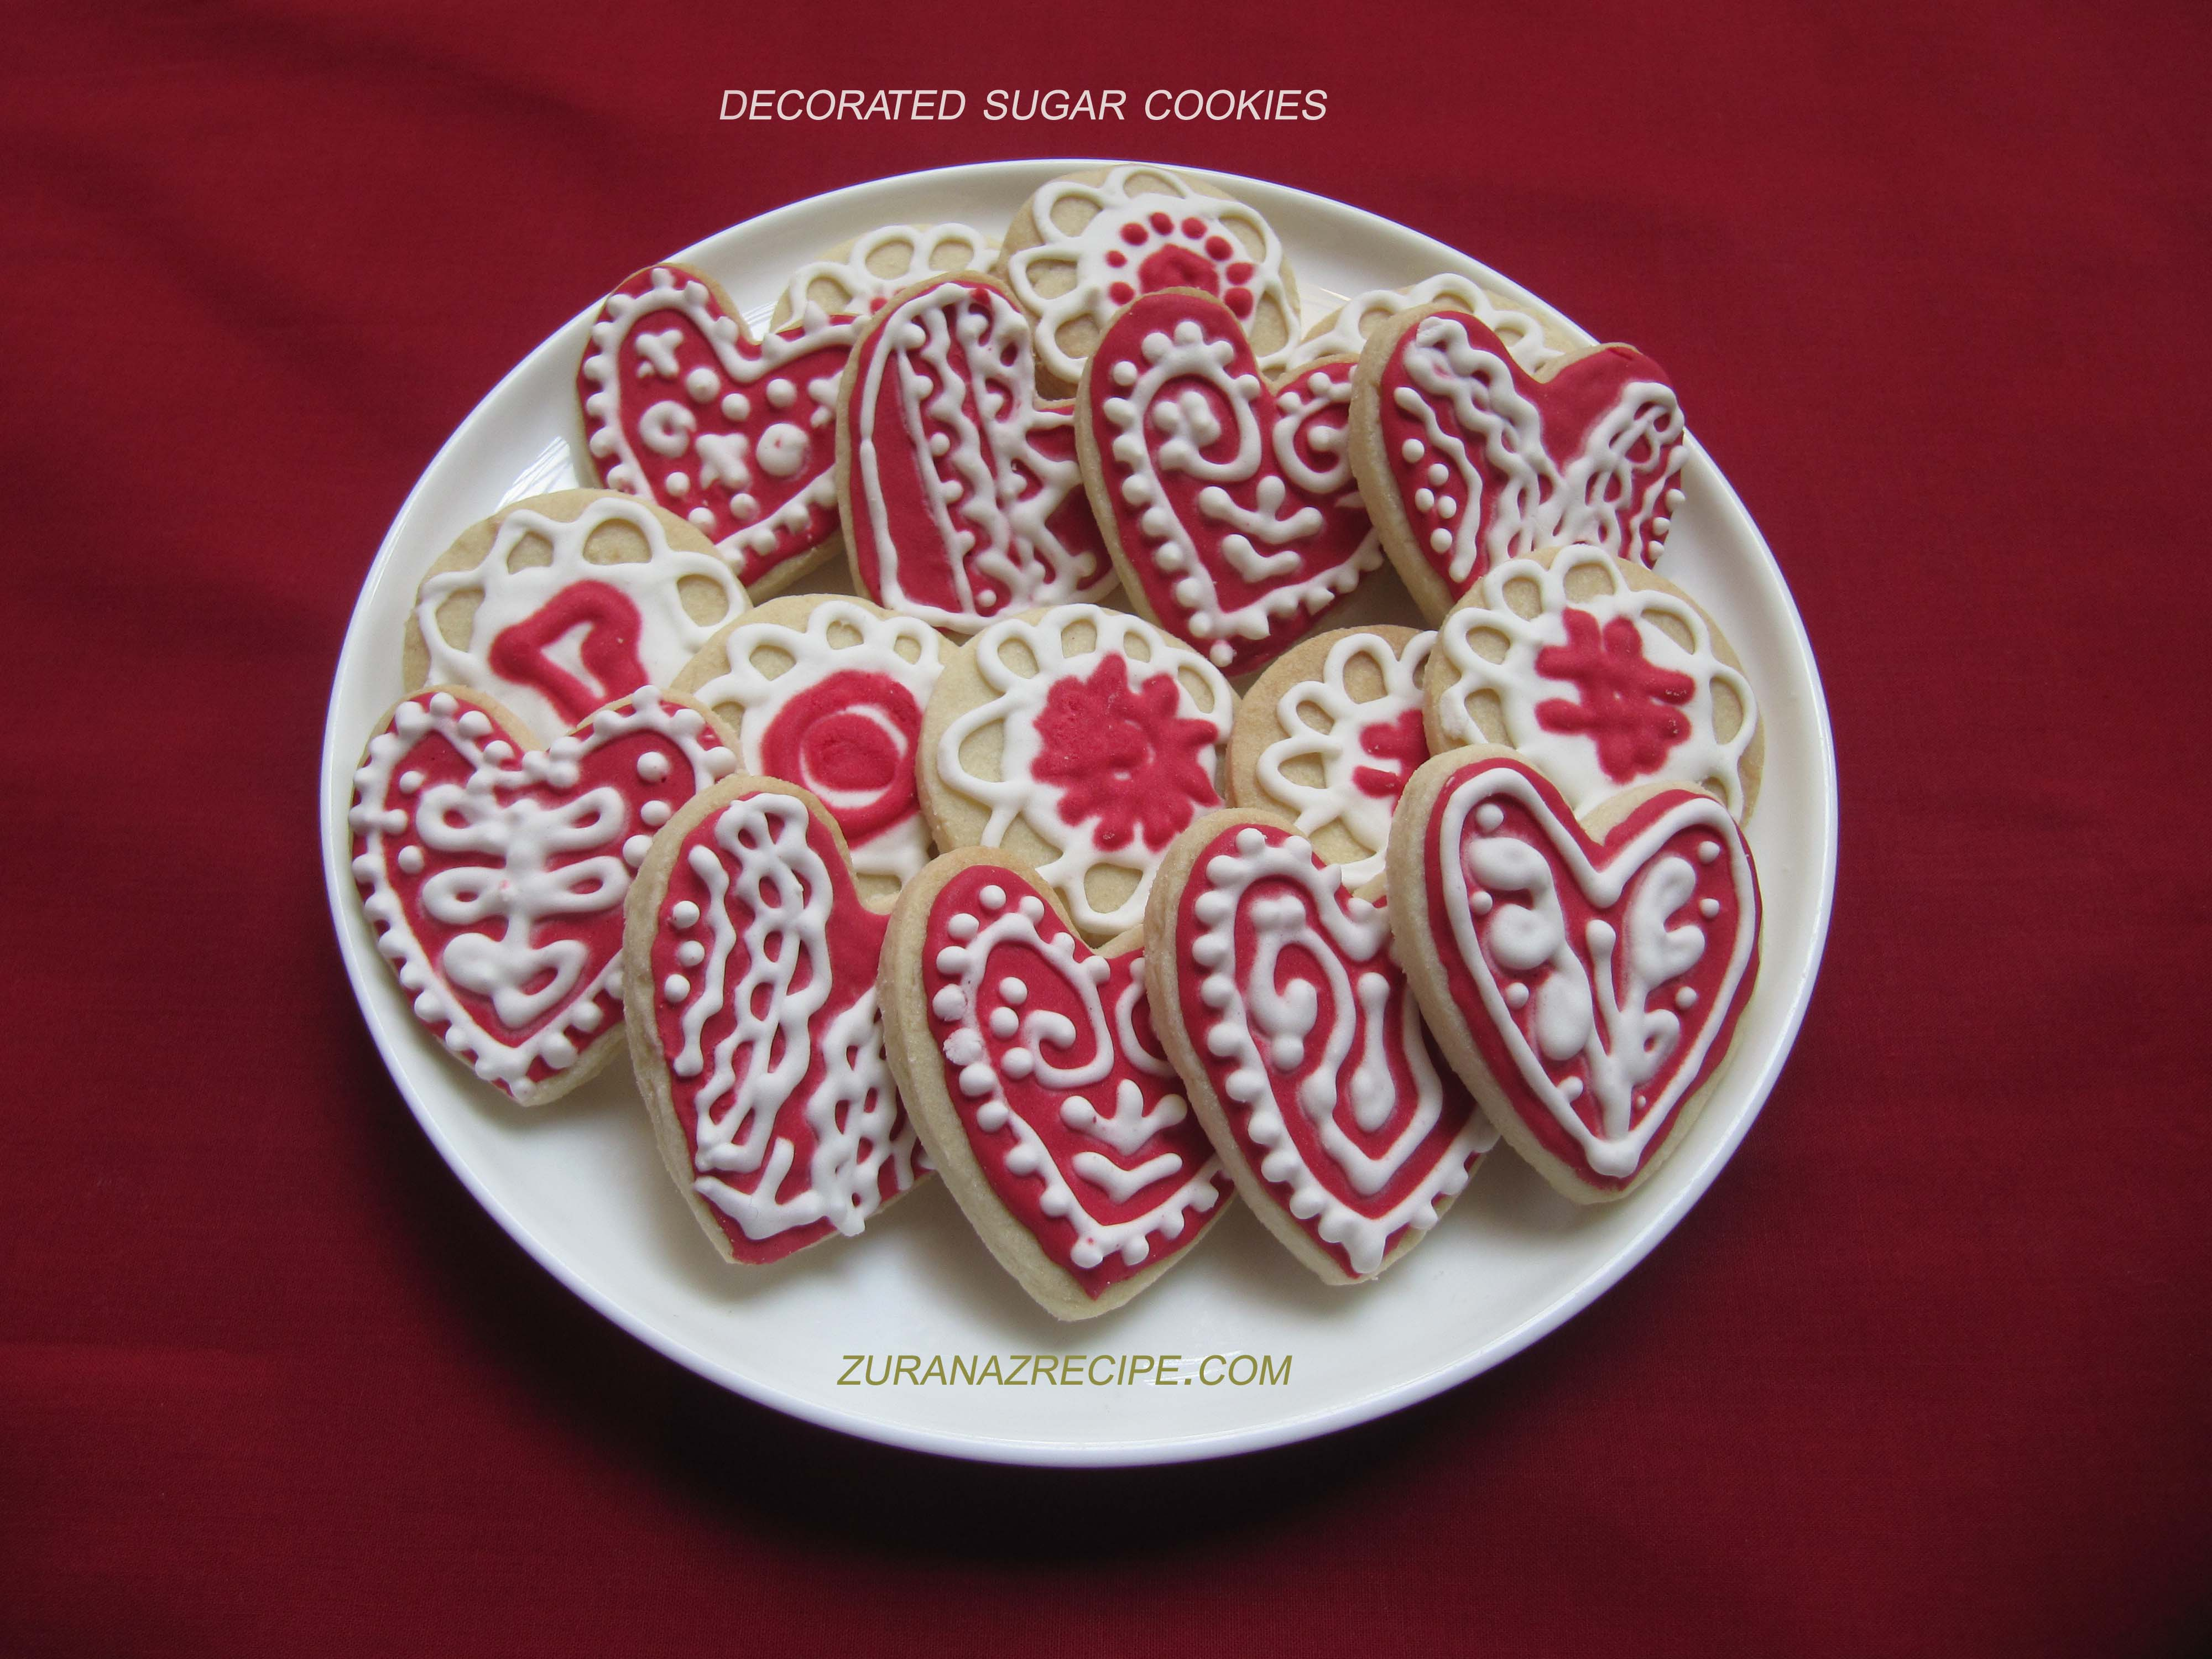 Red & White Decorated Sugar Cookies